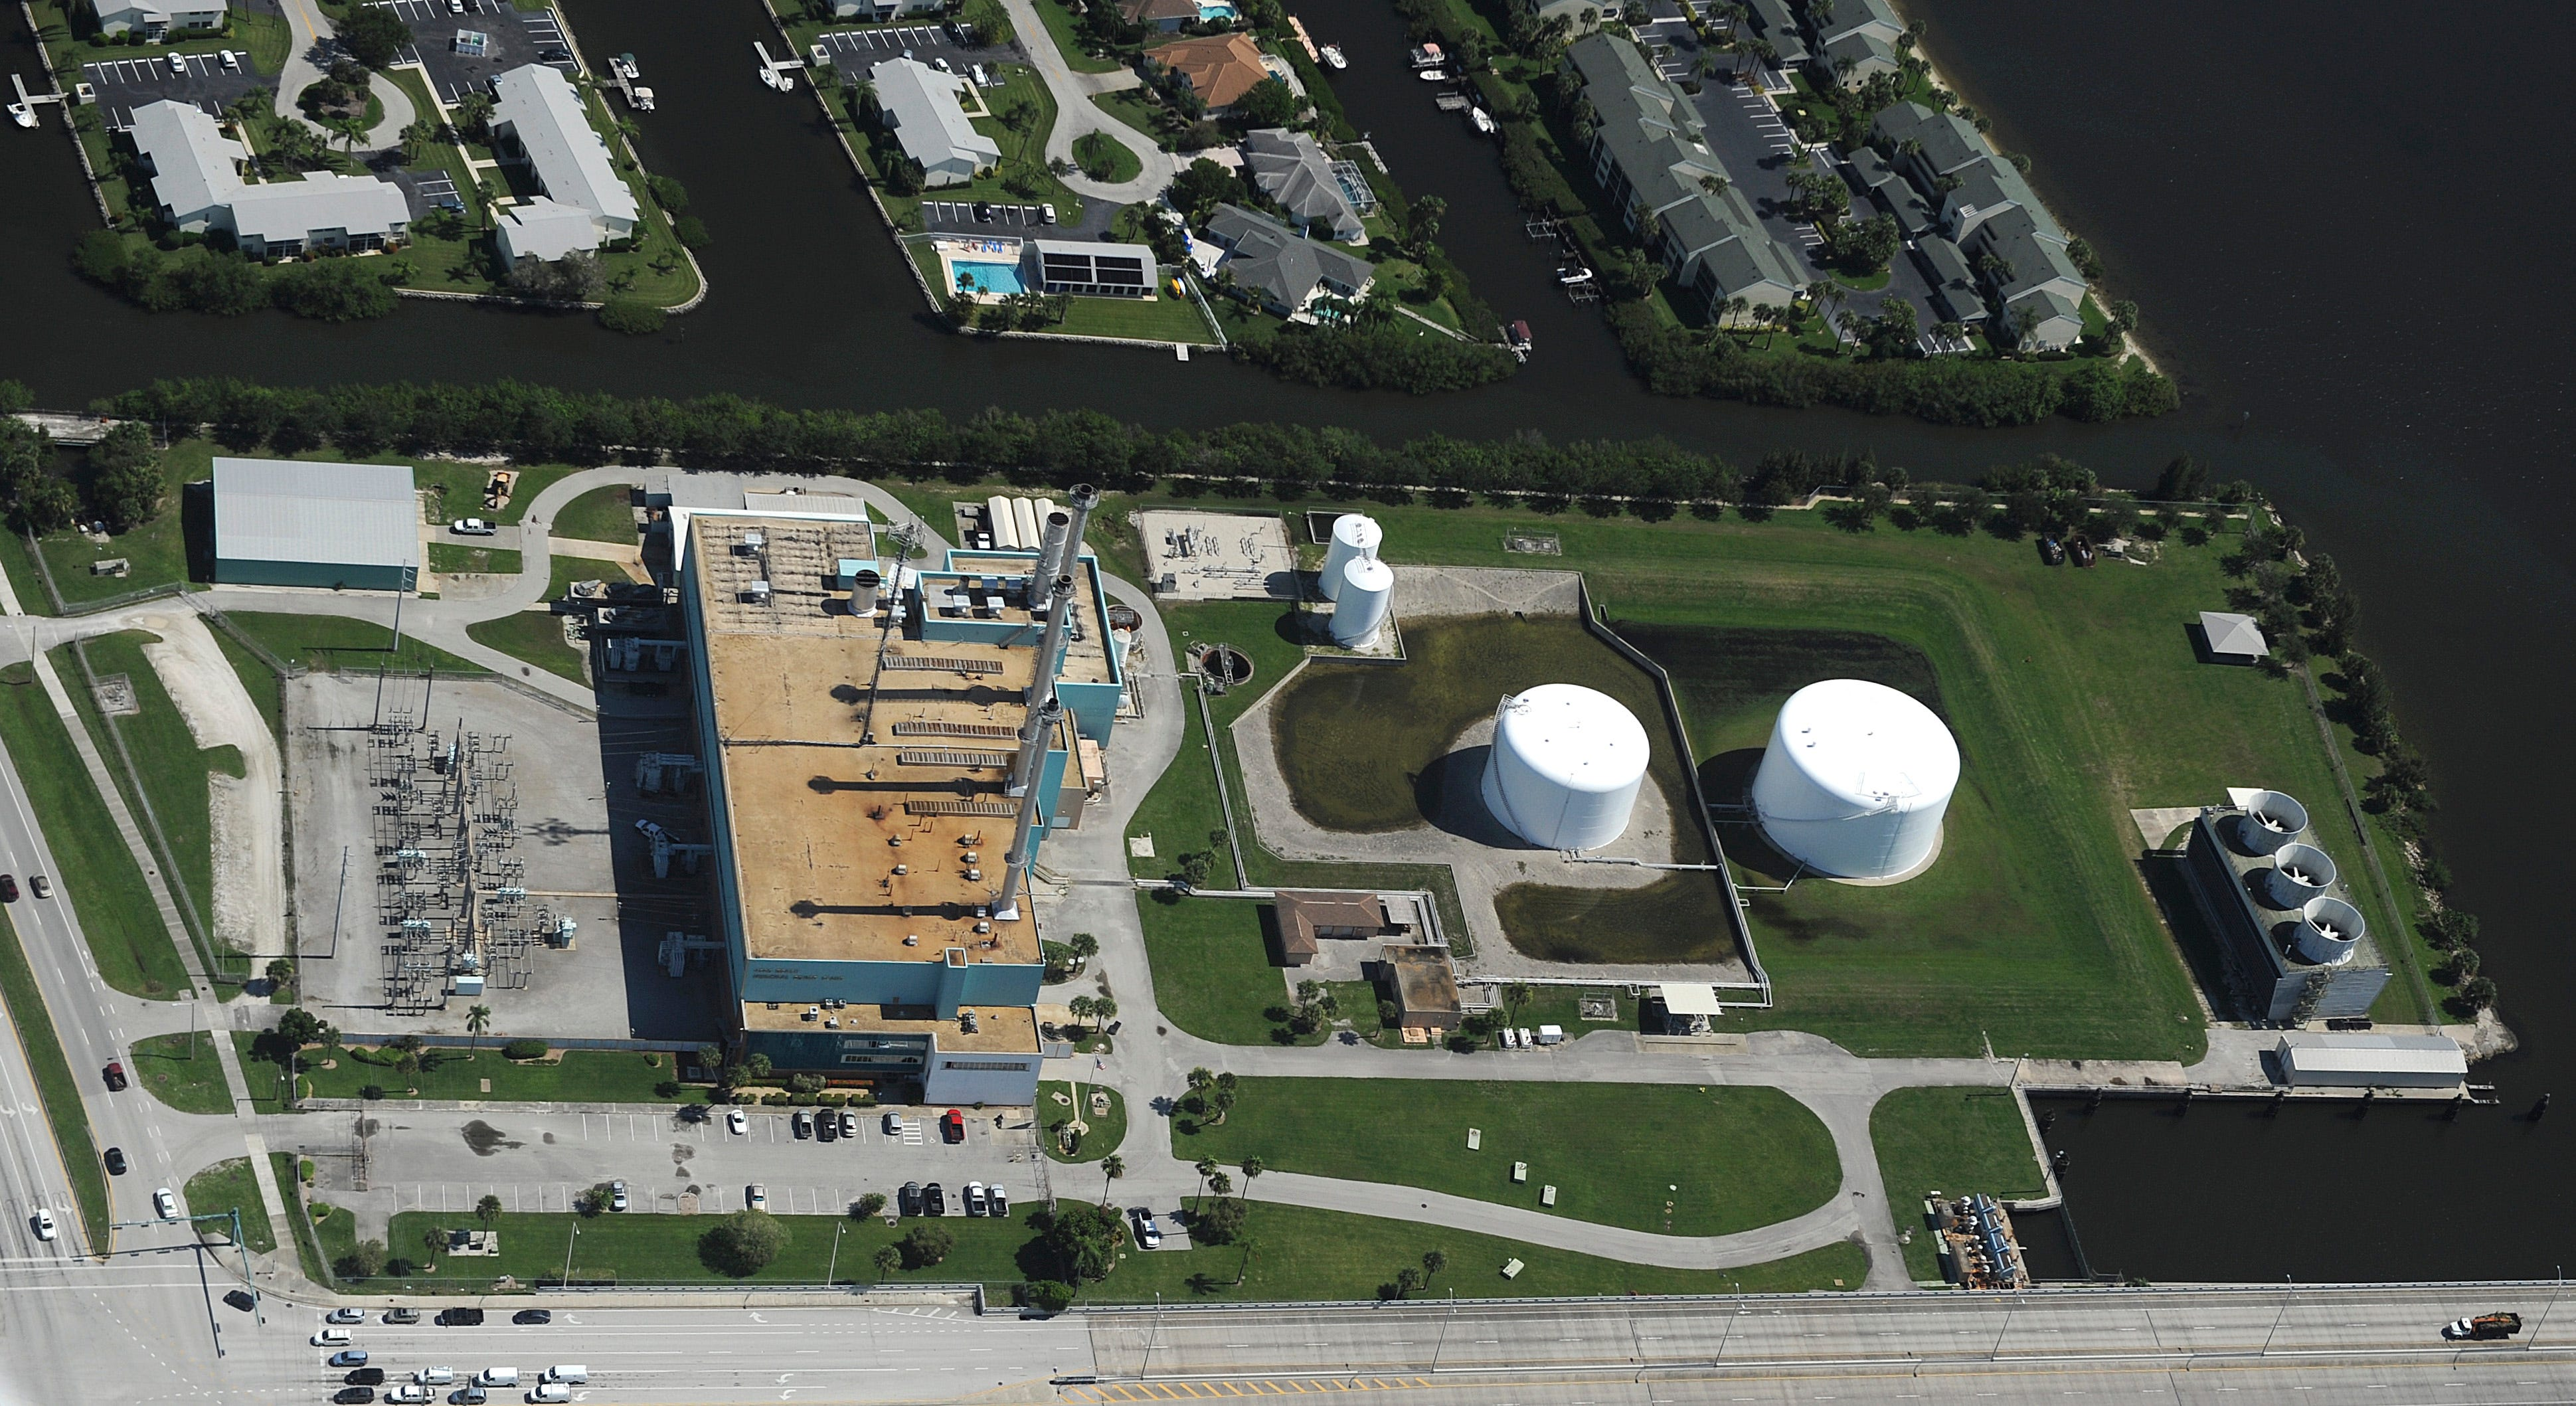 An aerial view of the Vero Beach Municipal Power Plant from July, 2014.